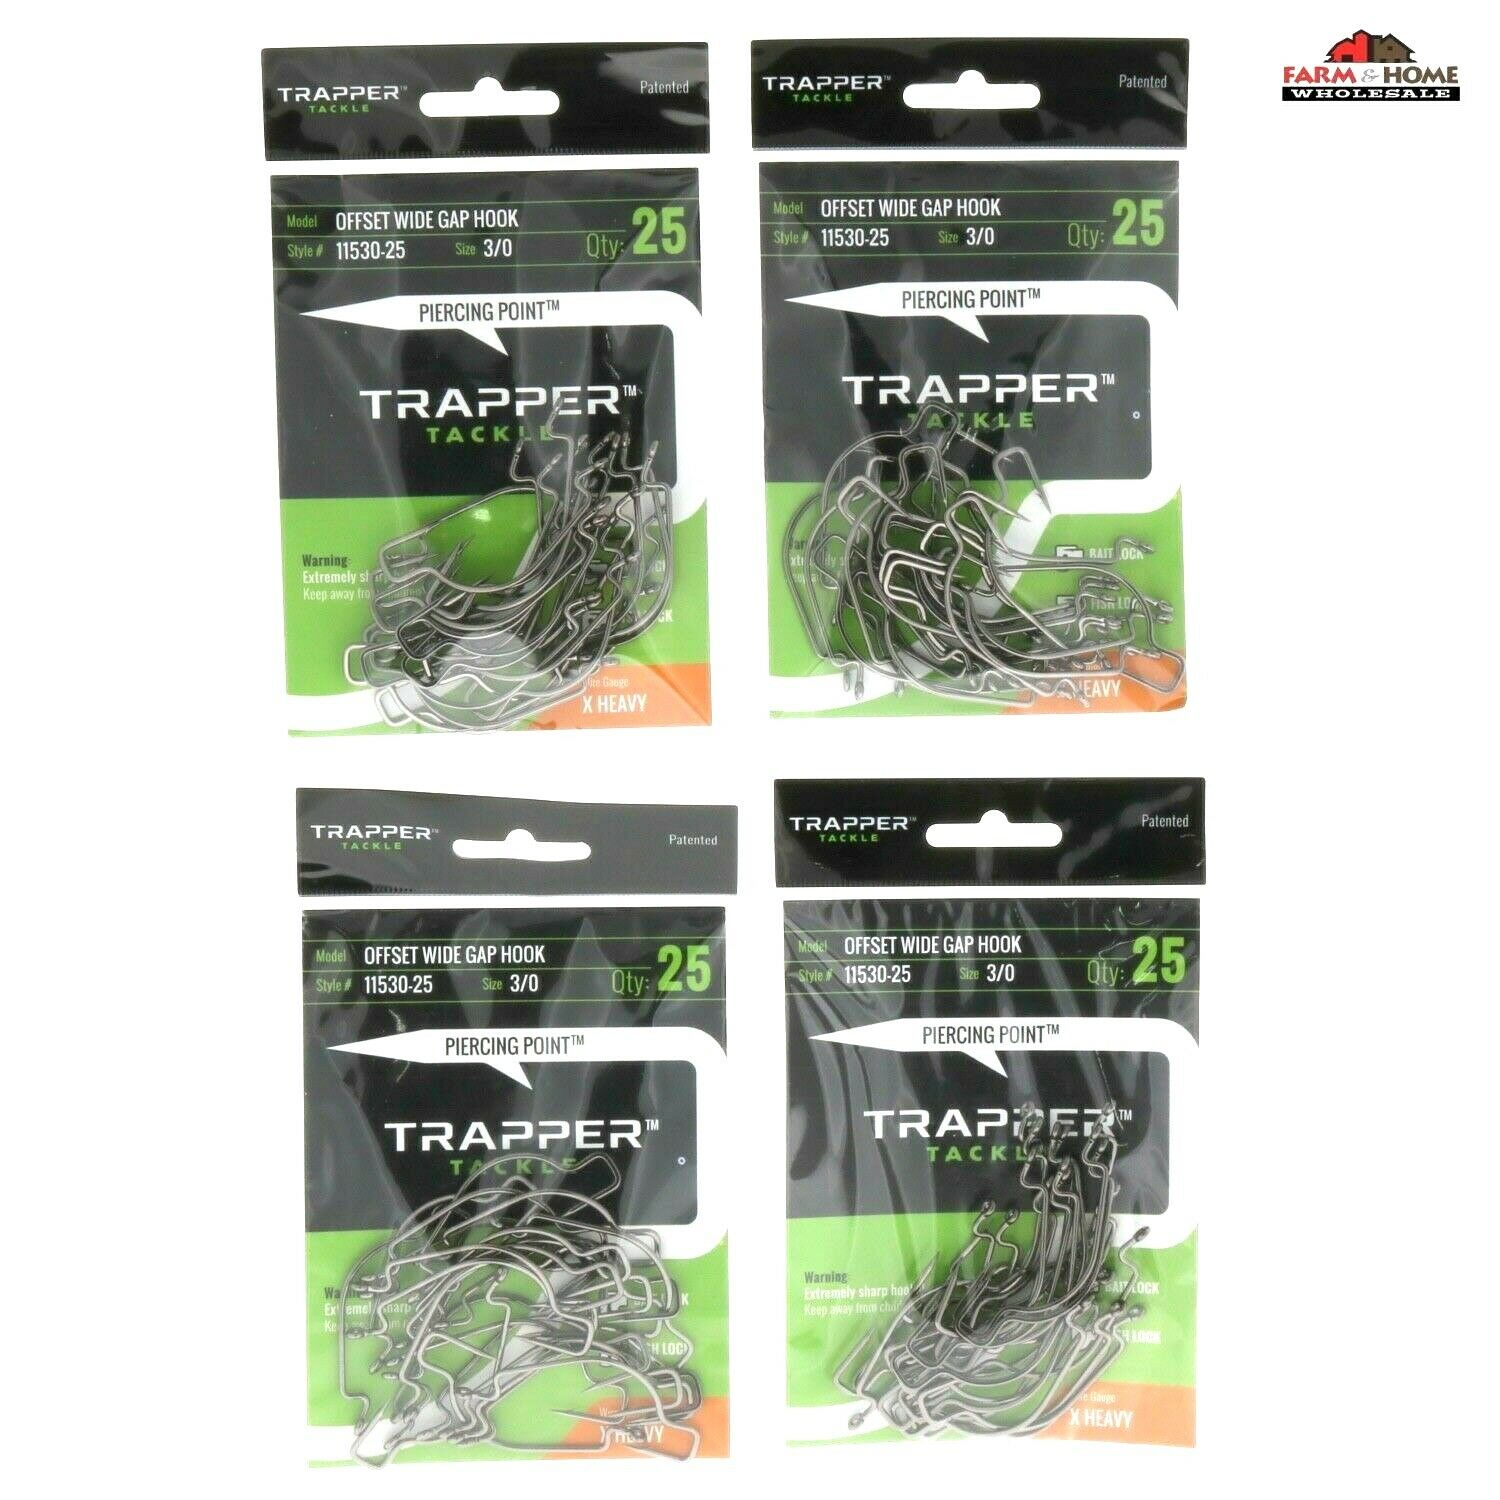 Offset Carbon Steel Wide Gap Hooks  3 0 Fishing Hook 100pcs  New  order now lowest prices